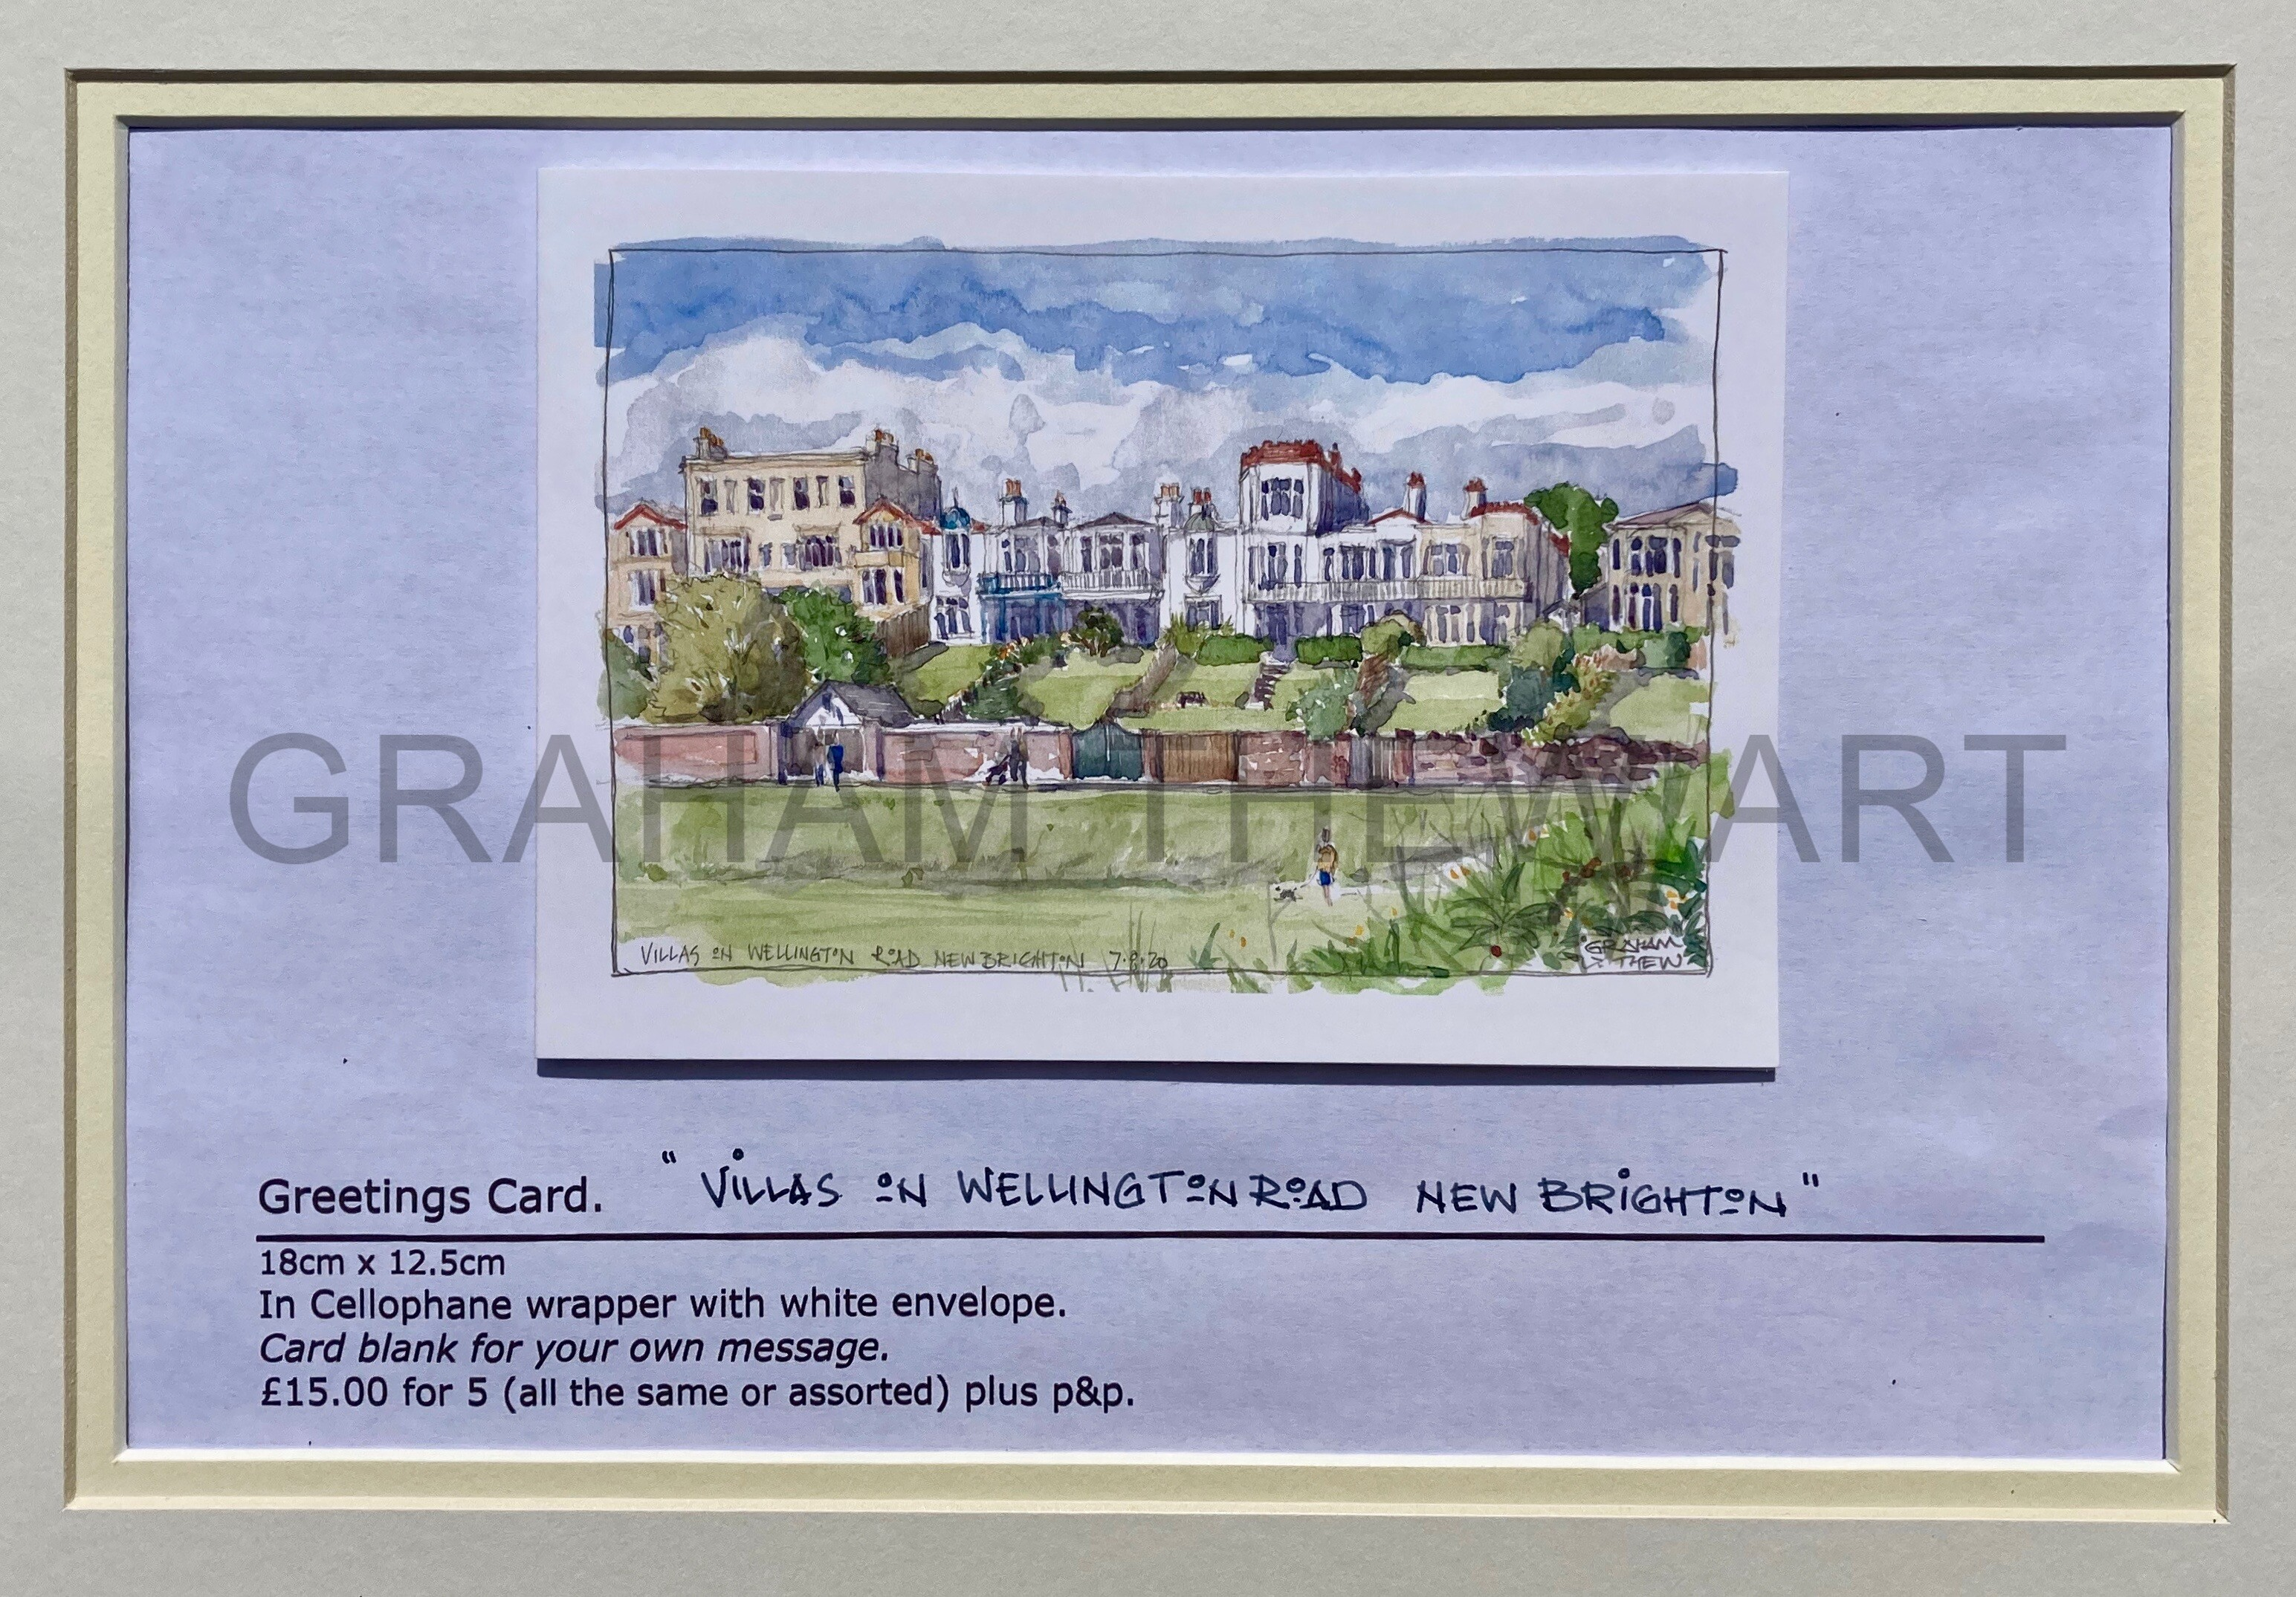 Greeting cards: Wellington Road, New Brighton